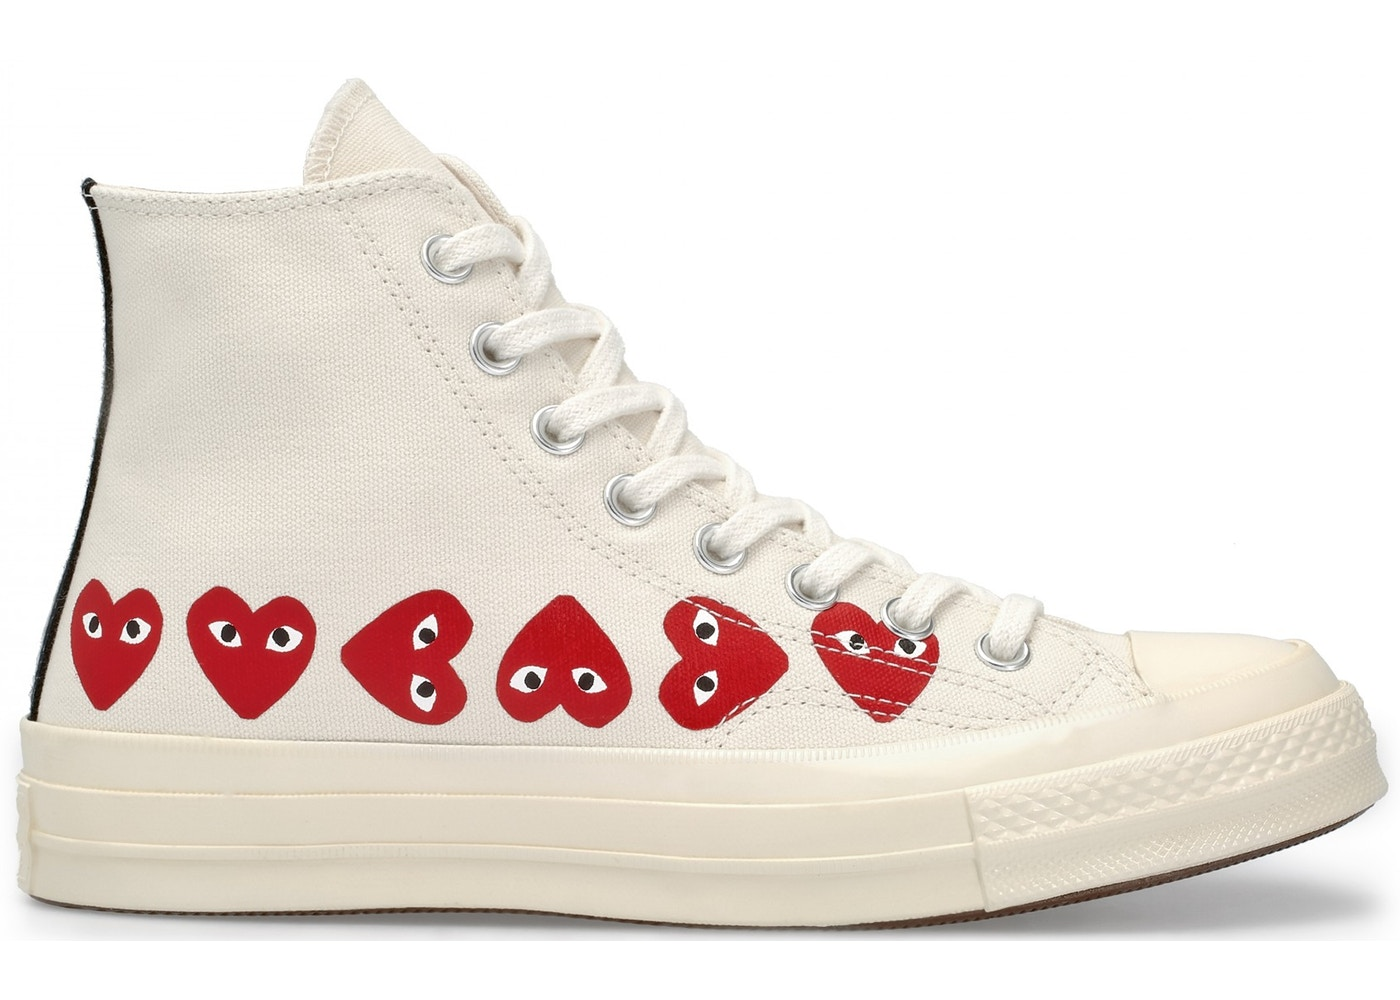 4bfcd7836135 Converse Chuck Taylor All-Star 70s Hi Comme des Garcons Play Multi-Heart  White